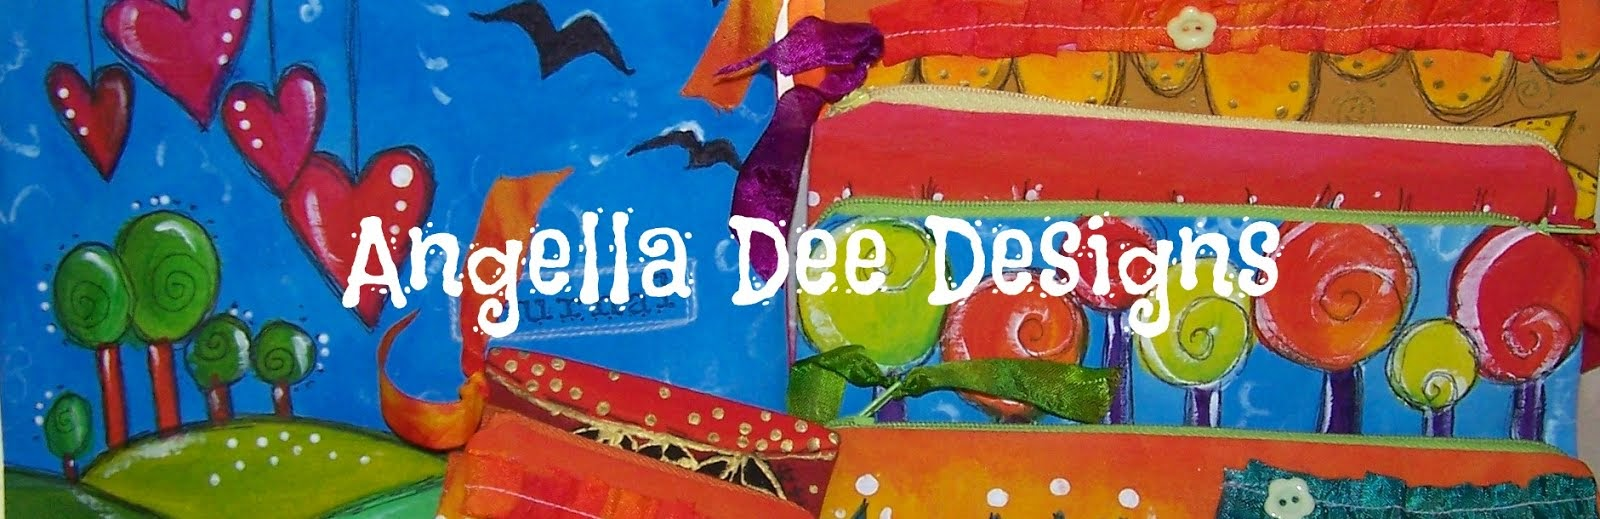 Angella Dee Designs